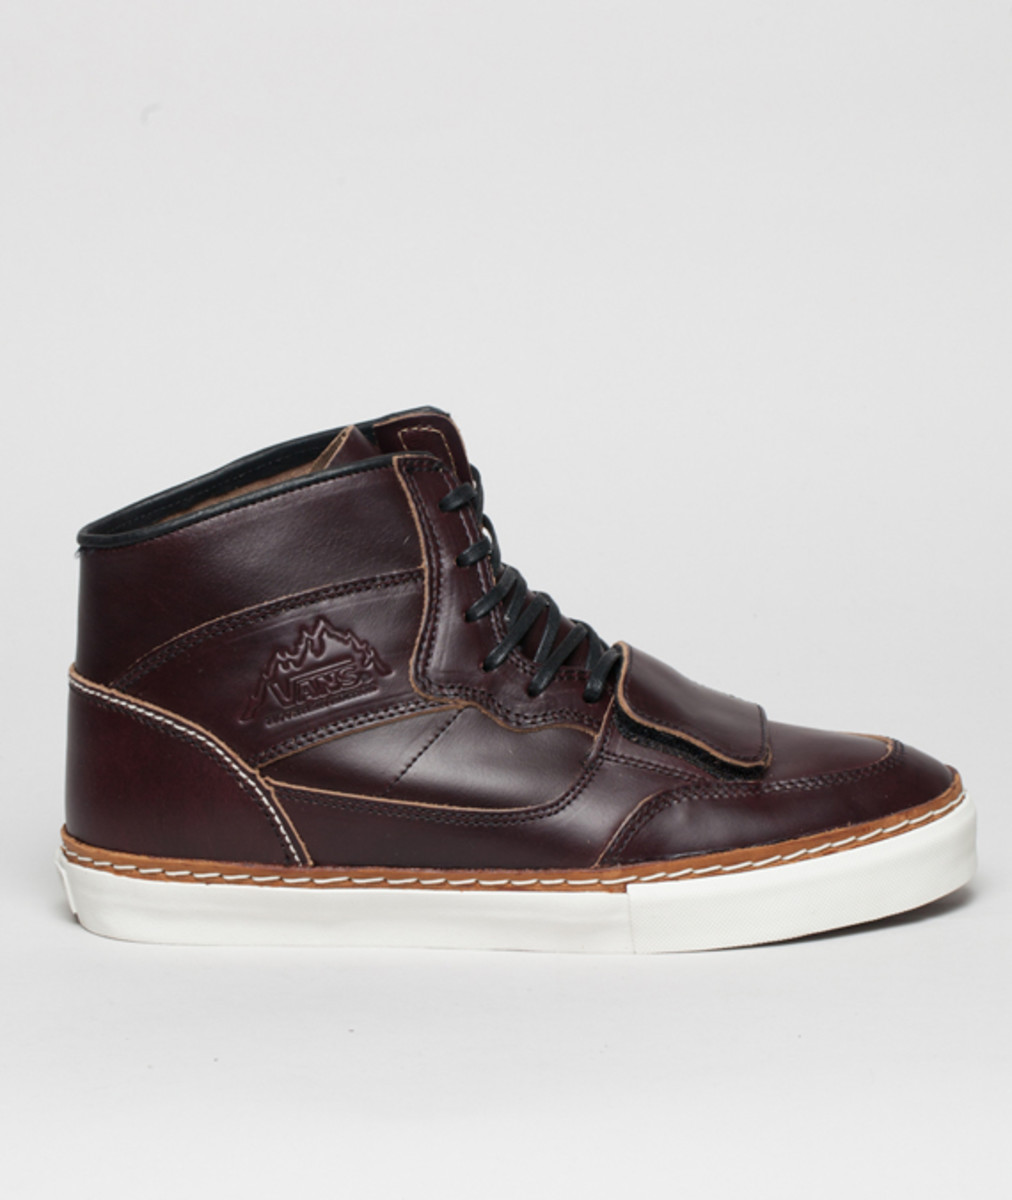 horween-leather-vans-mt-edition-decon-lx-04